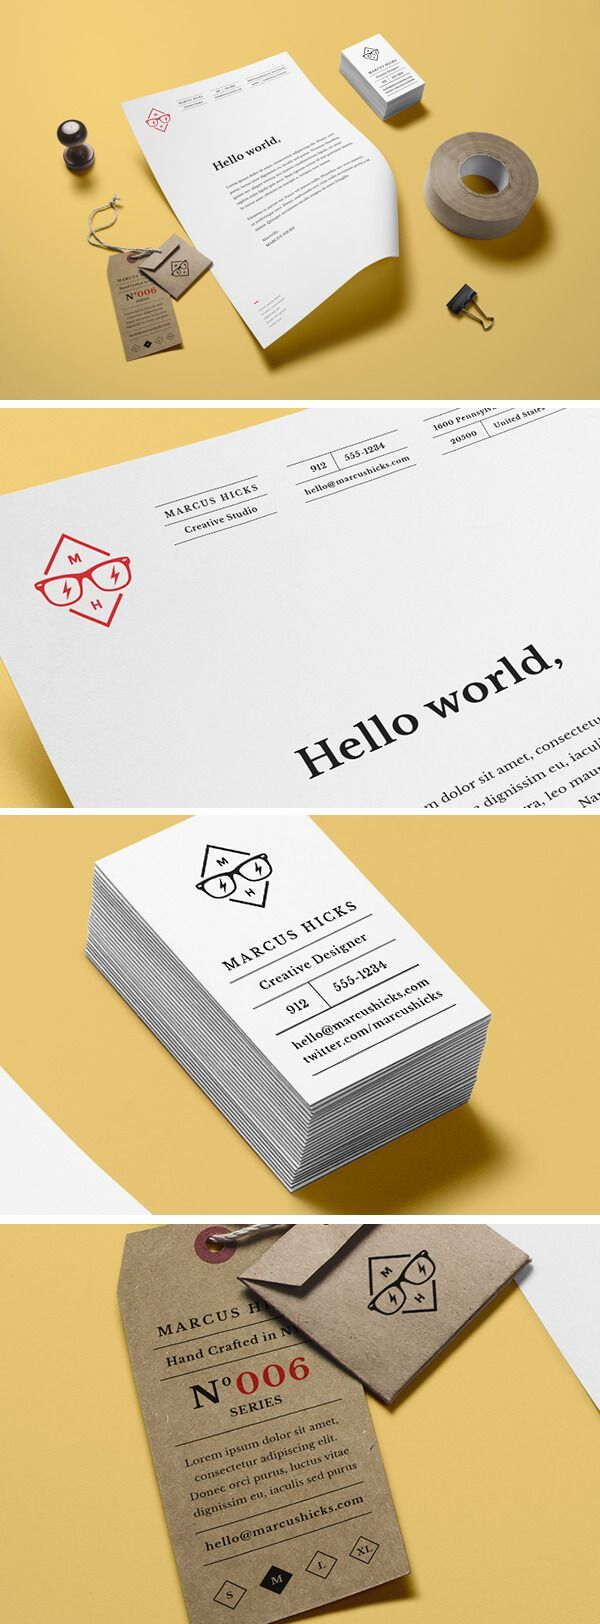 Free Identity & Branding PSD Mockup Vol 14 with high-resolution. Download this mockup for FREE and use them on your next projects. We hope that you will like our selection! -> http://goo.gl/kcmJdQ